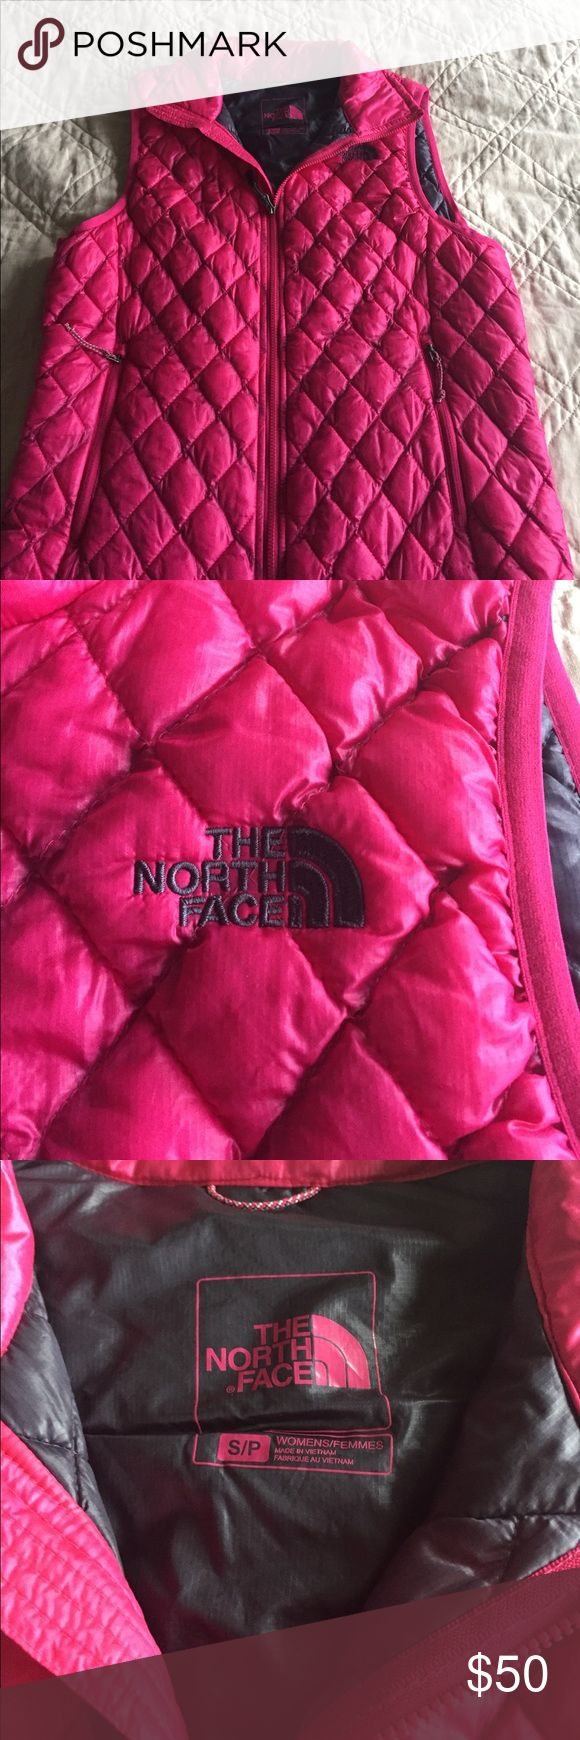 The North Face vest. Pink Thermoball vest. Pink The North Face Thermoball vest. Size small North Face Jackets & Coats Vests